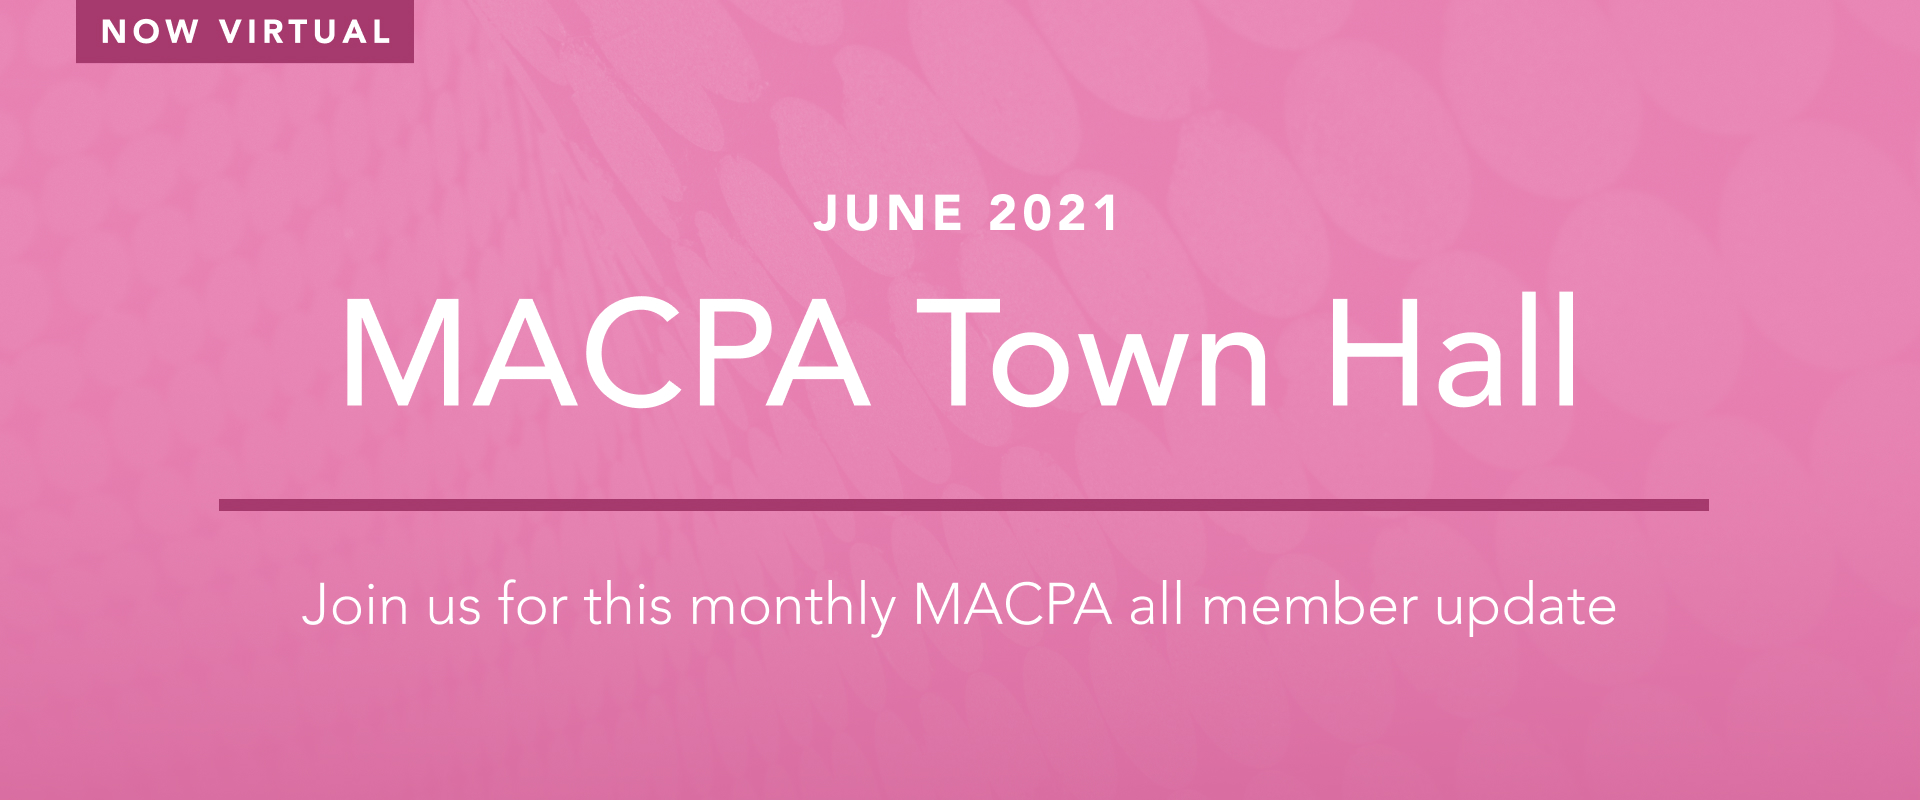 MACPA Town Hall and Annual Meeting